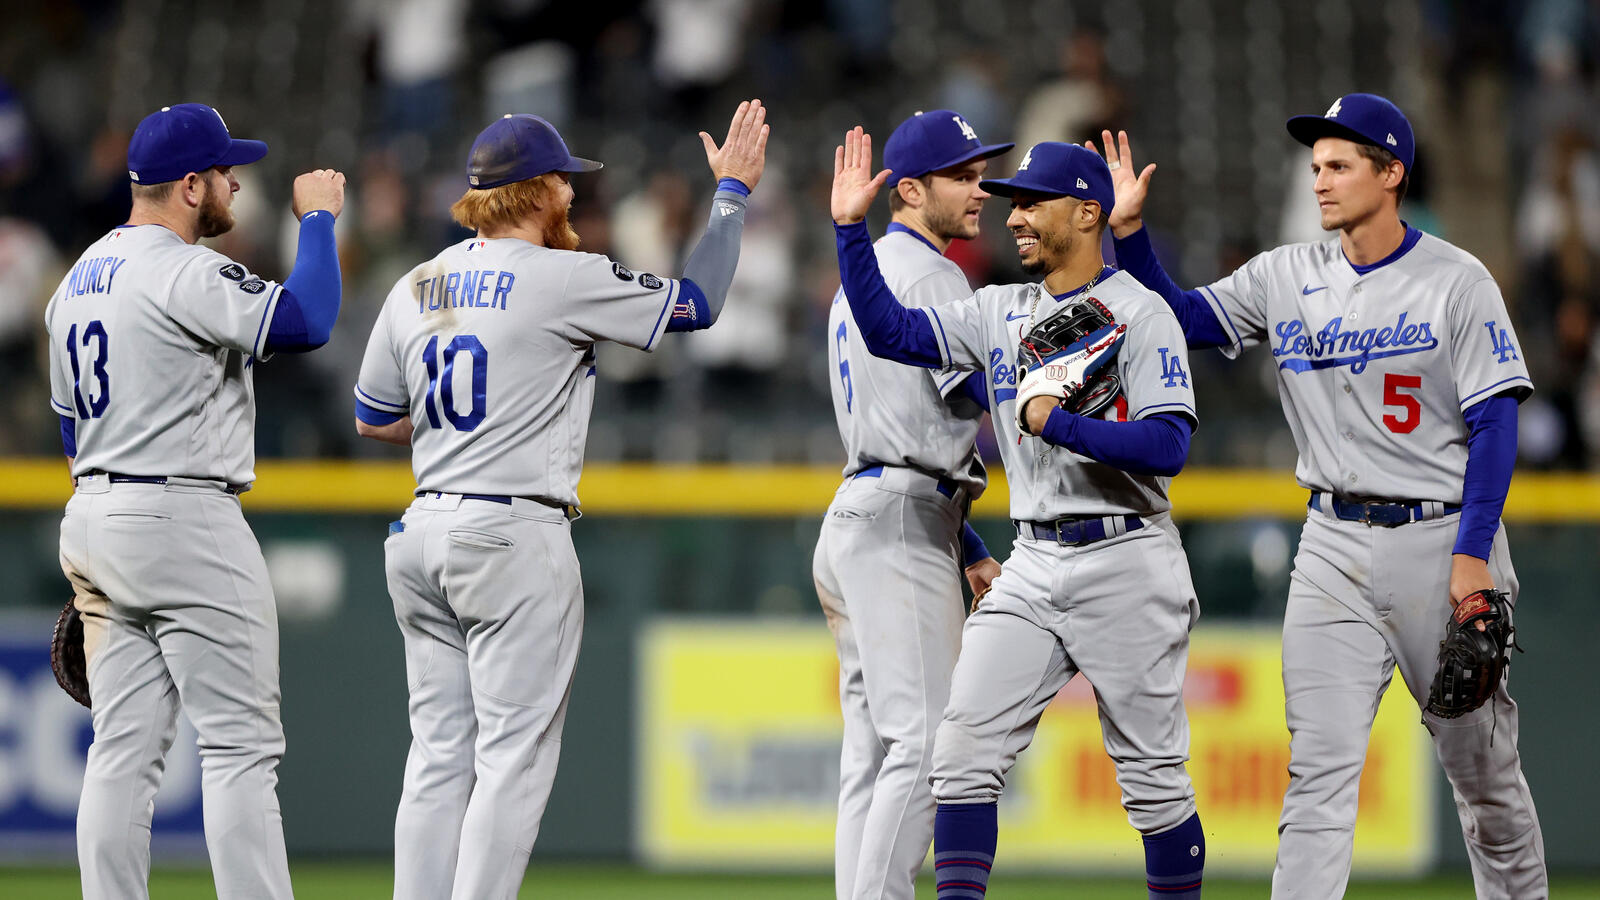 Dodgers Postseason Tickets For Wild Card, NLDS & NLCS Are On Sale Now